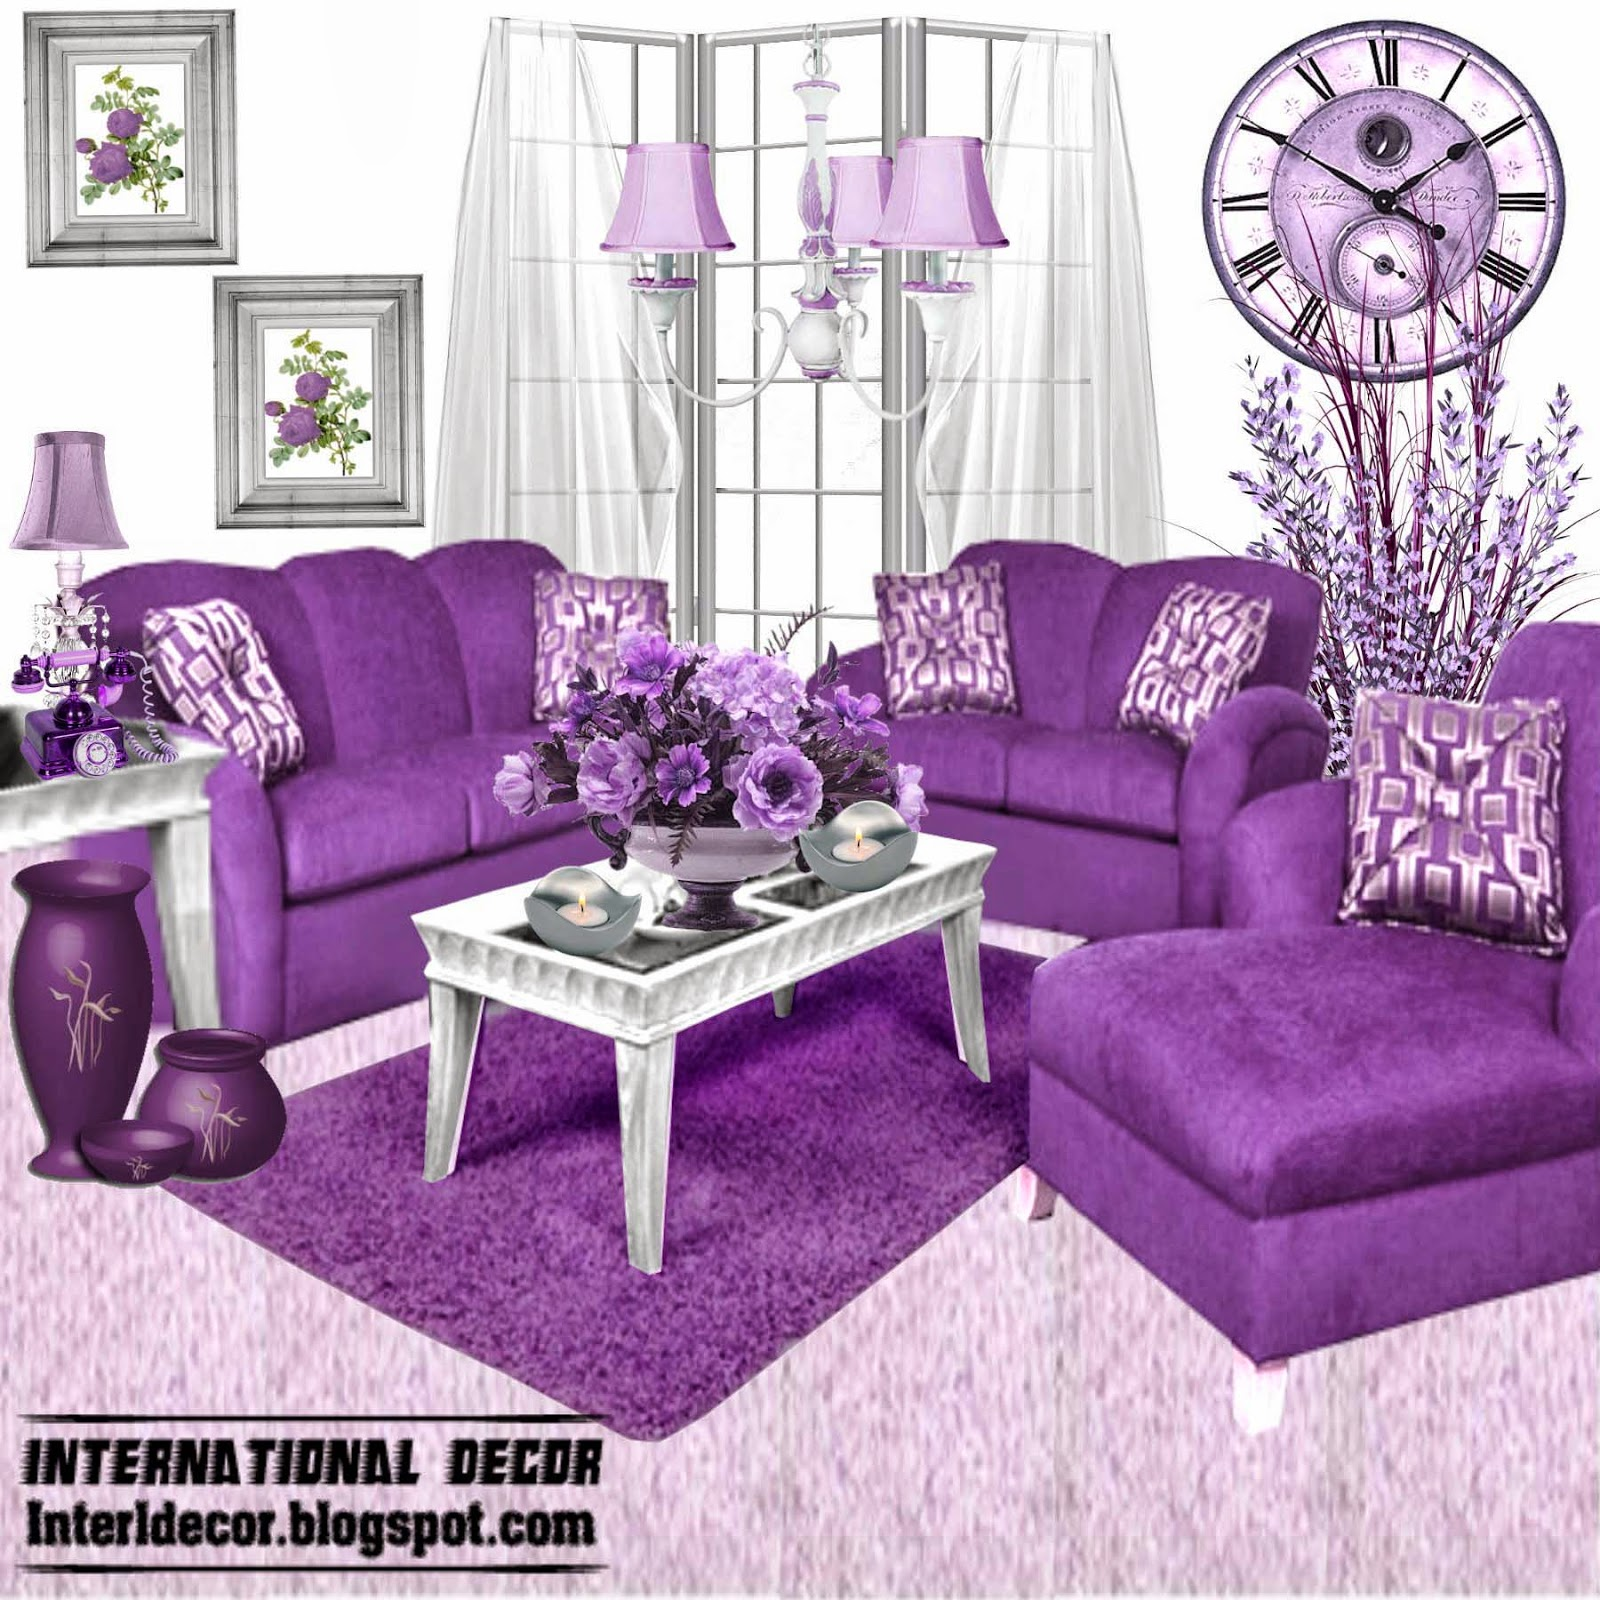 Luxury purple furniture sets sofas chairs for living Living room furniture design ideas